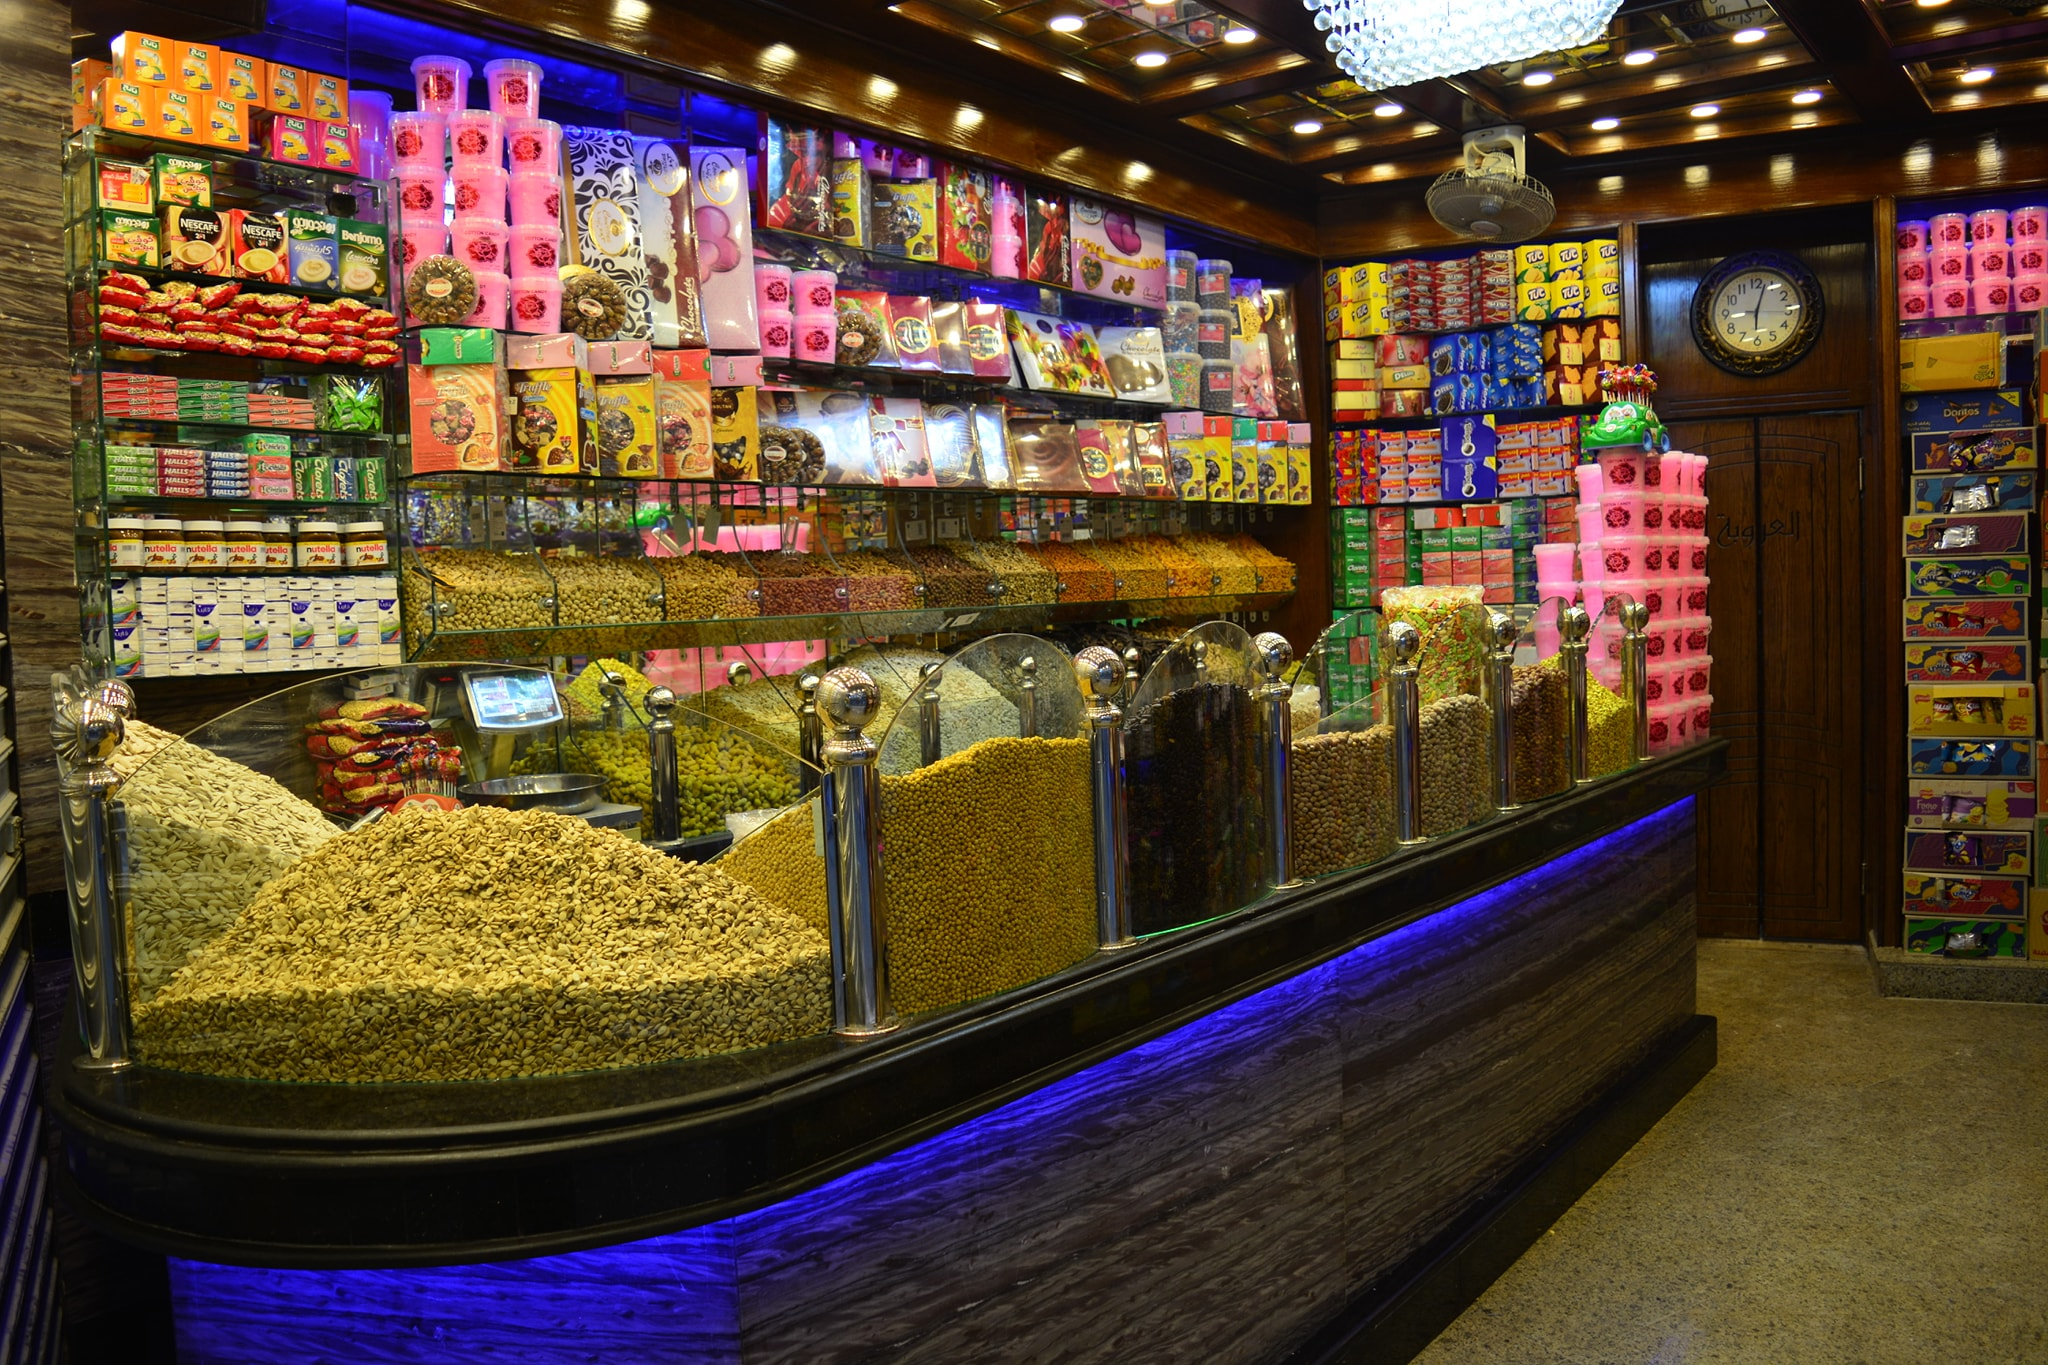 Nuts, Dried Fruits shops street food in Egypt